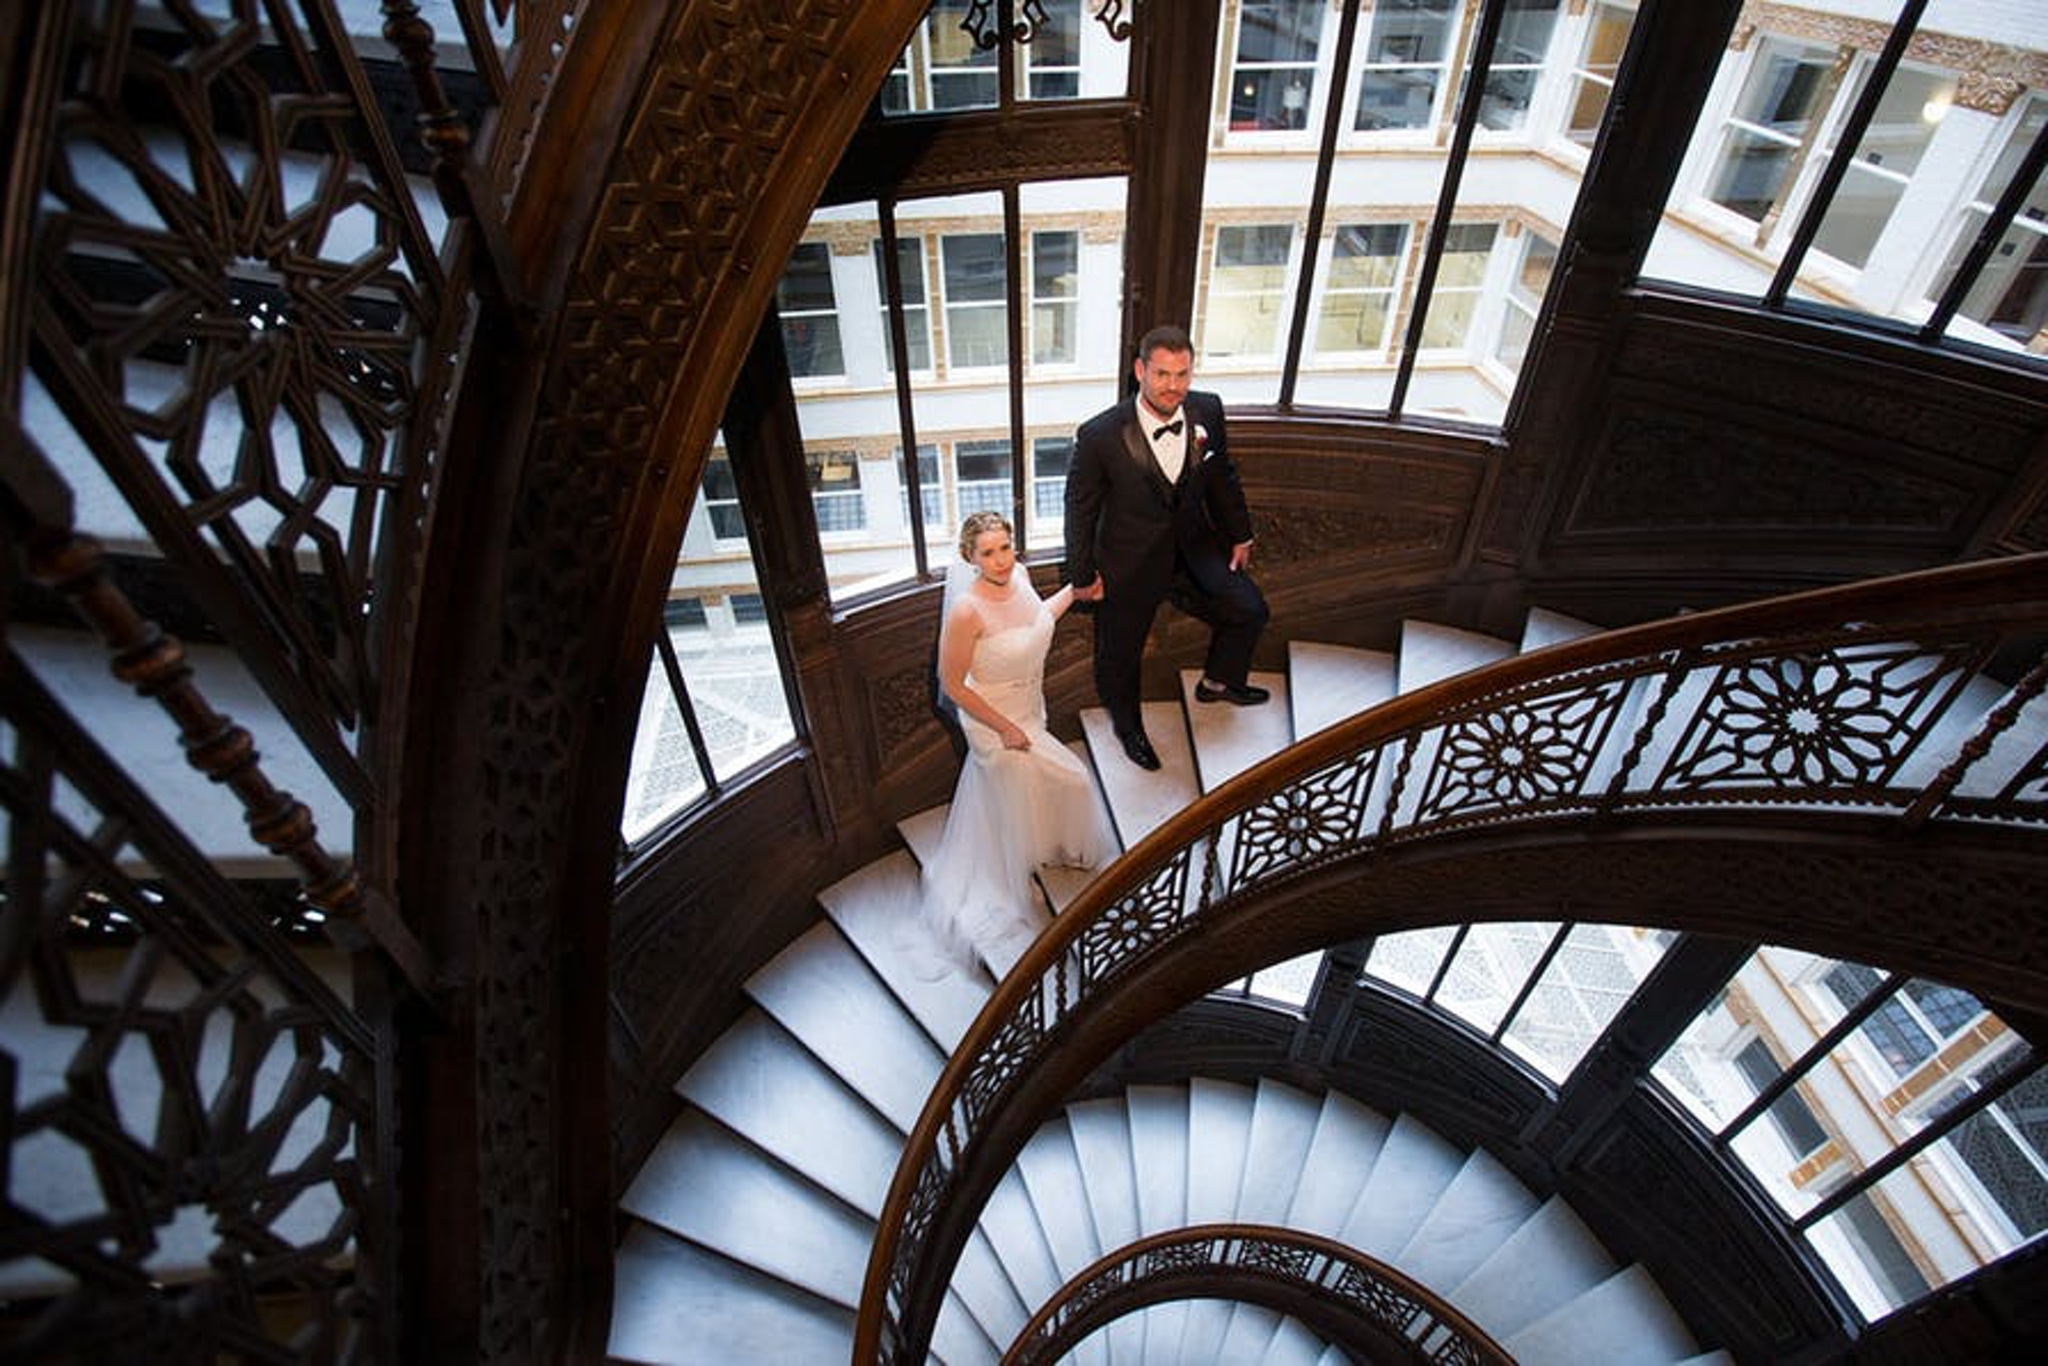 Bride and groom on winding staircase at The Rookery in Chicago